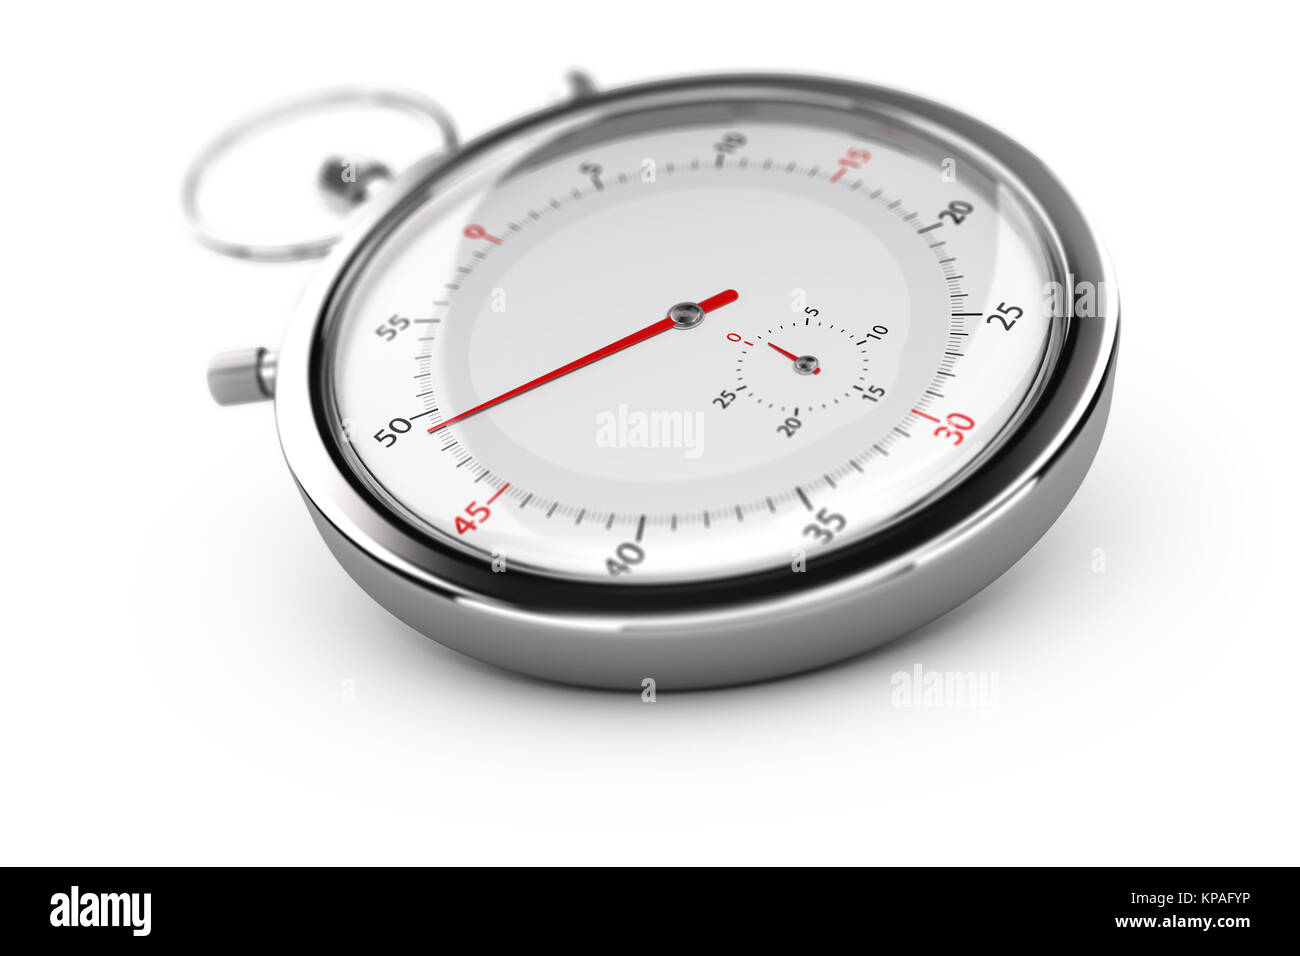 Chronograph, Stopwatch Over White - Stock Image